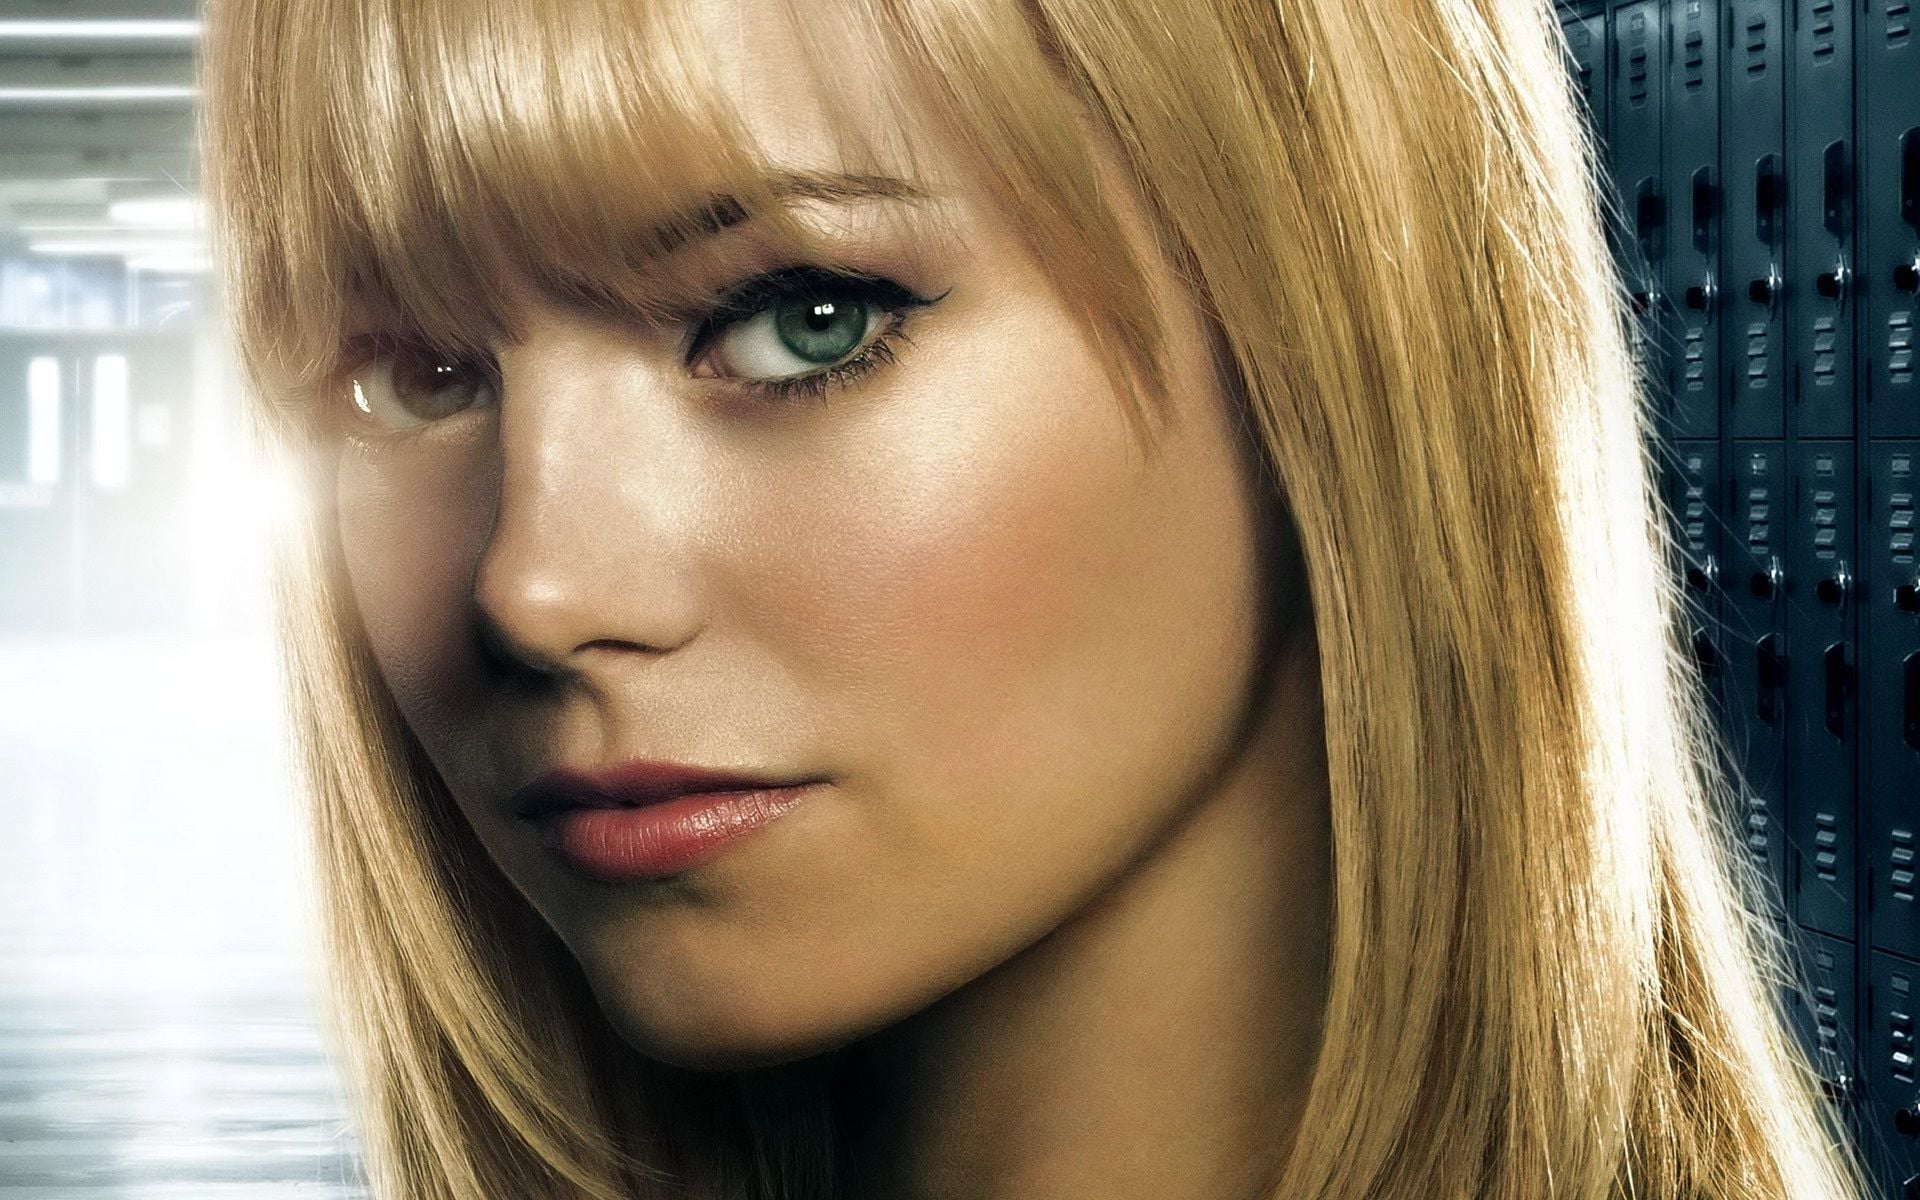 Cool Emma Stone face HD wallpapers